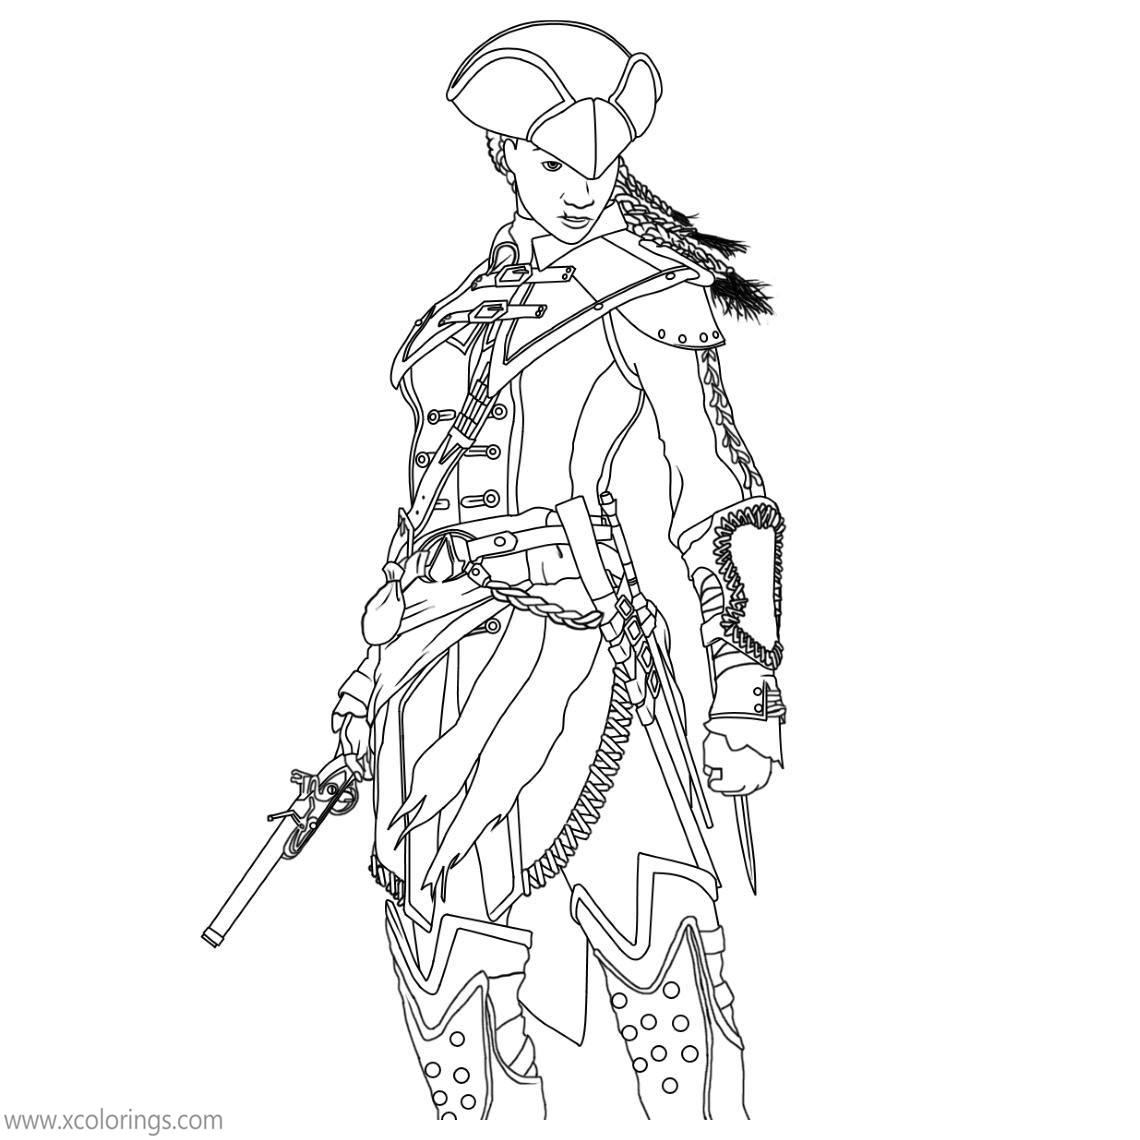 Assassin S Creed Coloring Pages Aveline De Grandpre Xcolorings Com